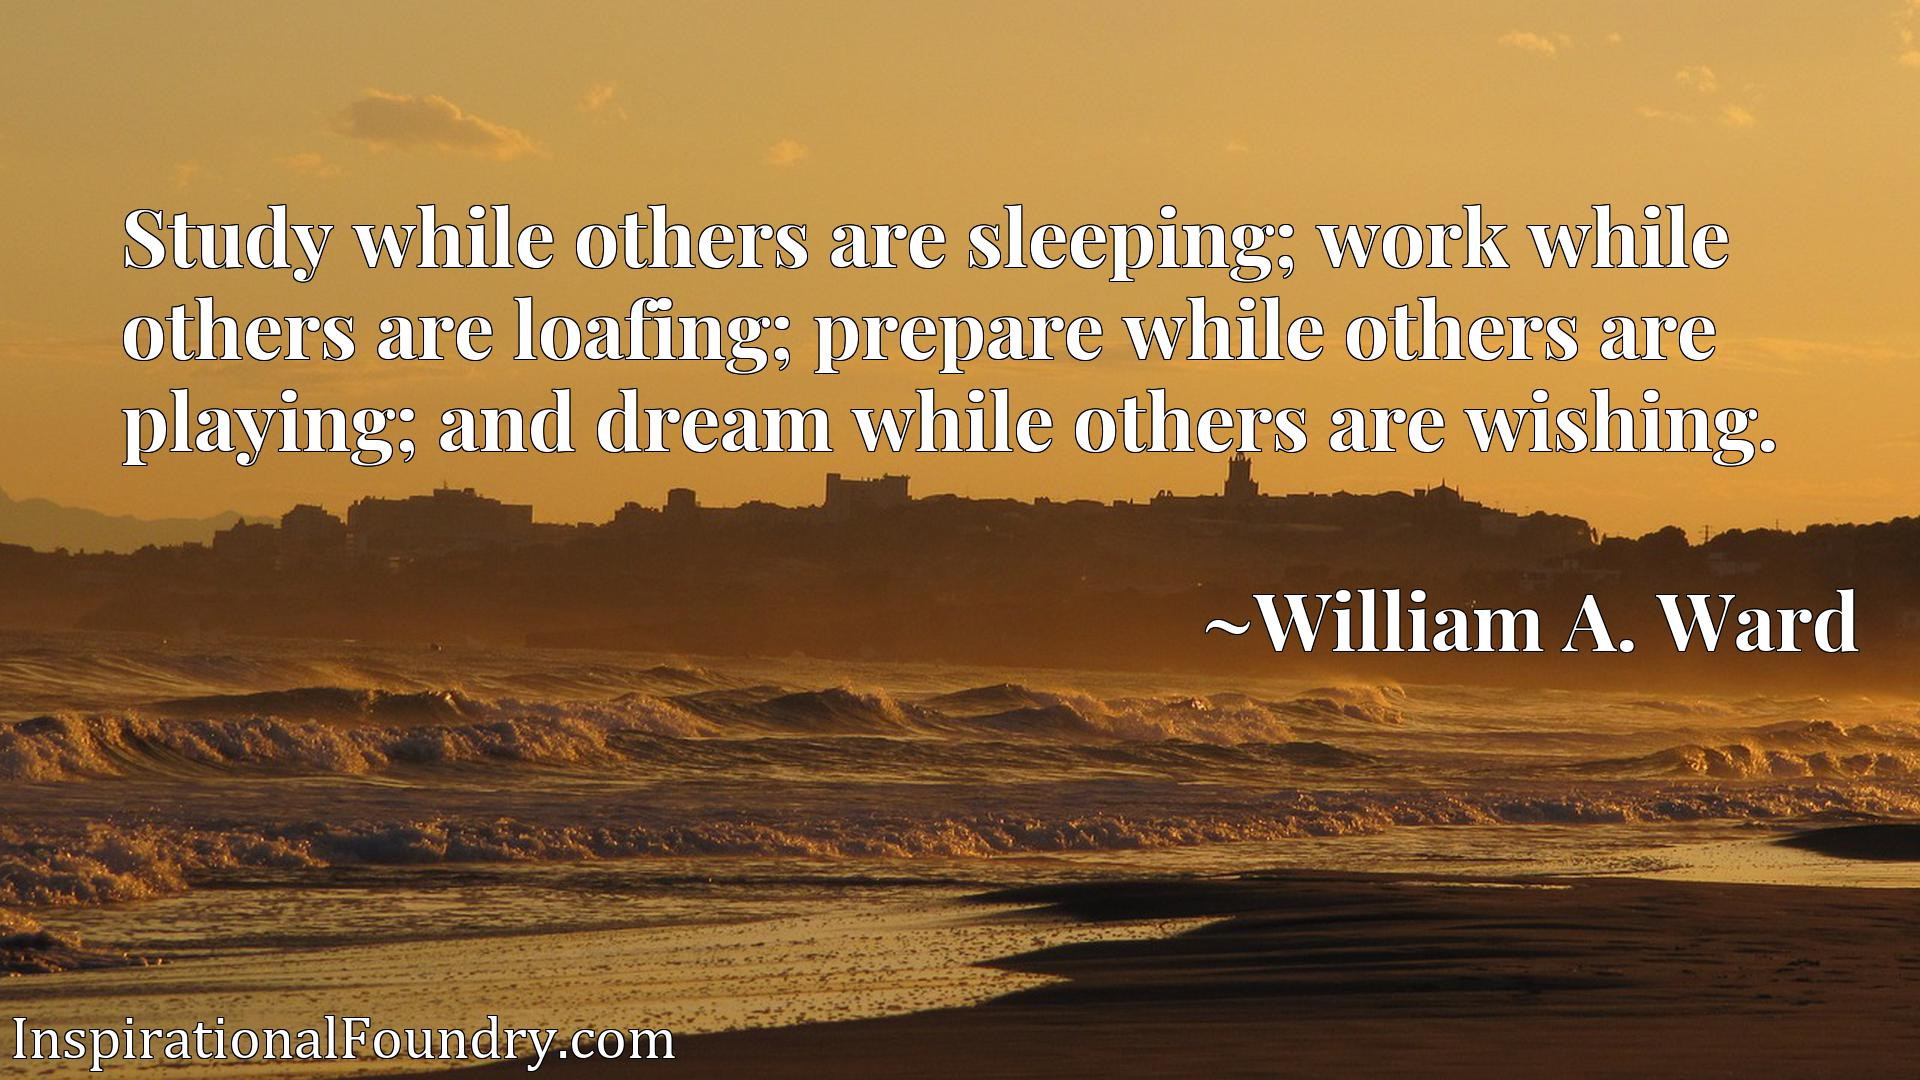 Study while others are sleeping; work while others are loafing; prepare while others are playing; and dream while others are wishing.